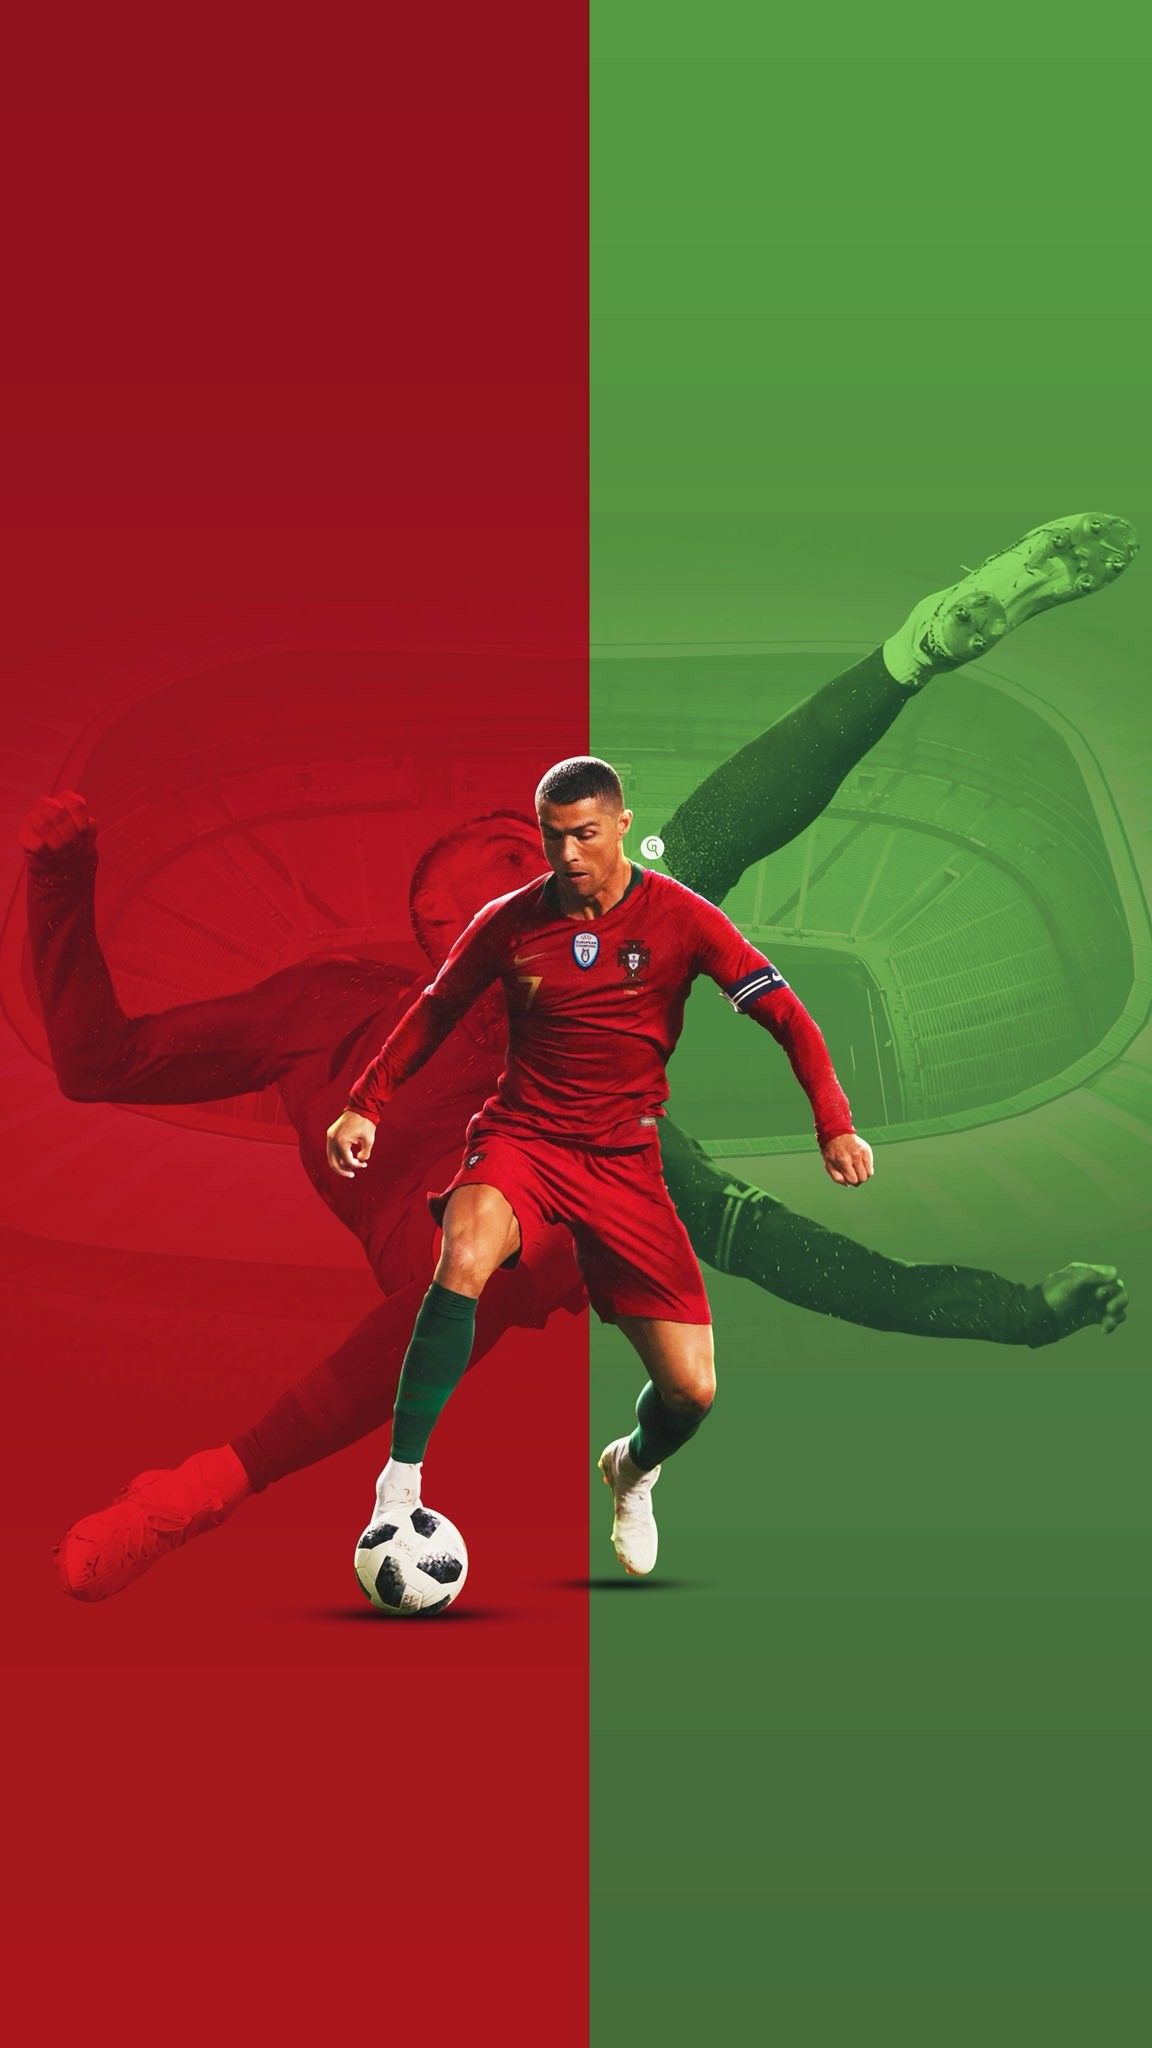 Pin on CR7 FIFA World Cup 2018 Phone Wallpeper